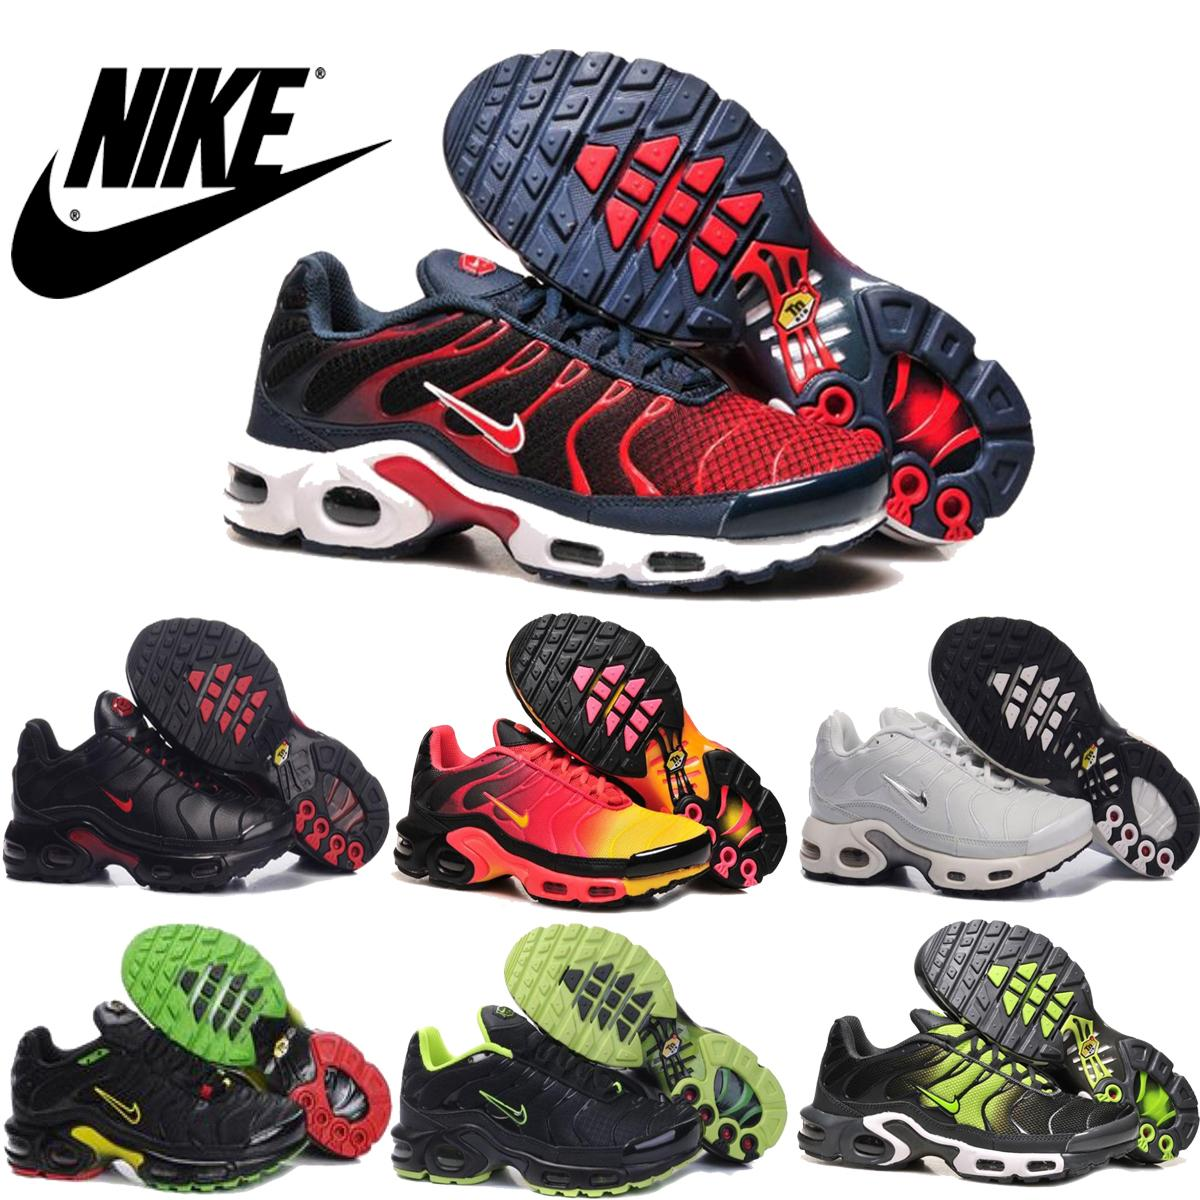 girasol palo Audaz  Nike Air Maxes 2016 Tn Mens Running Shoes,100% Original Quality ...